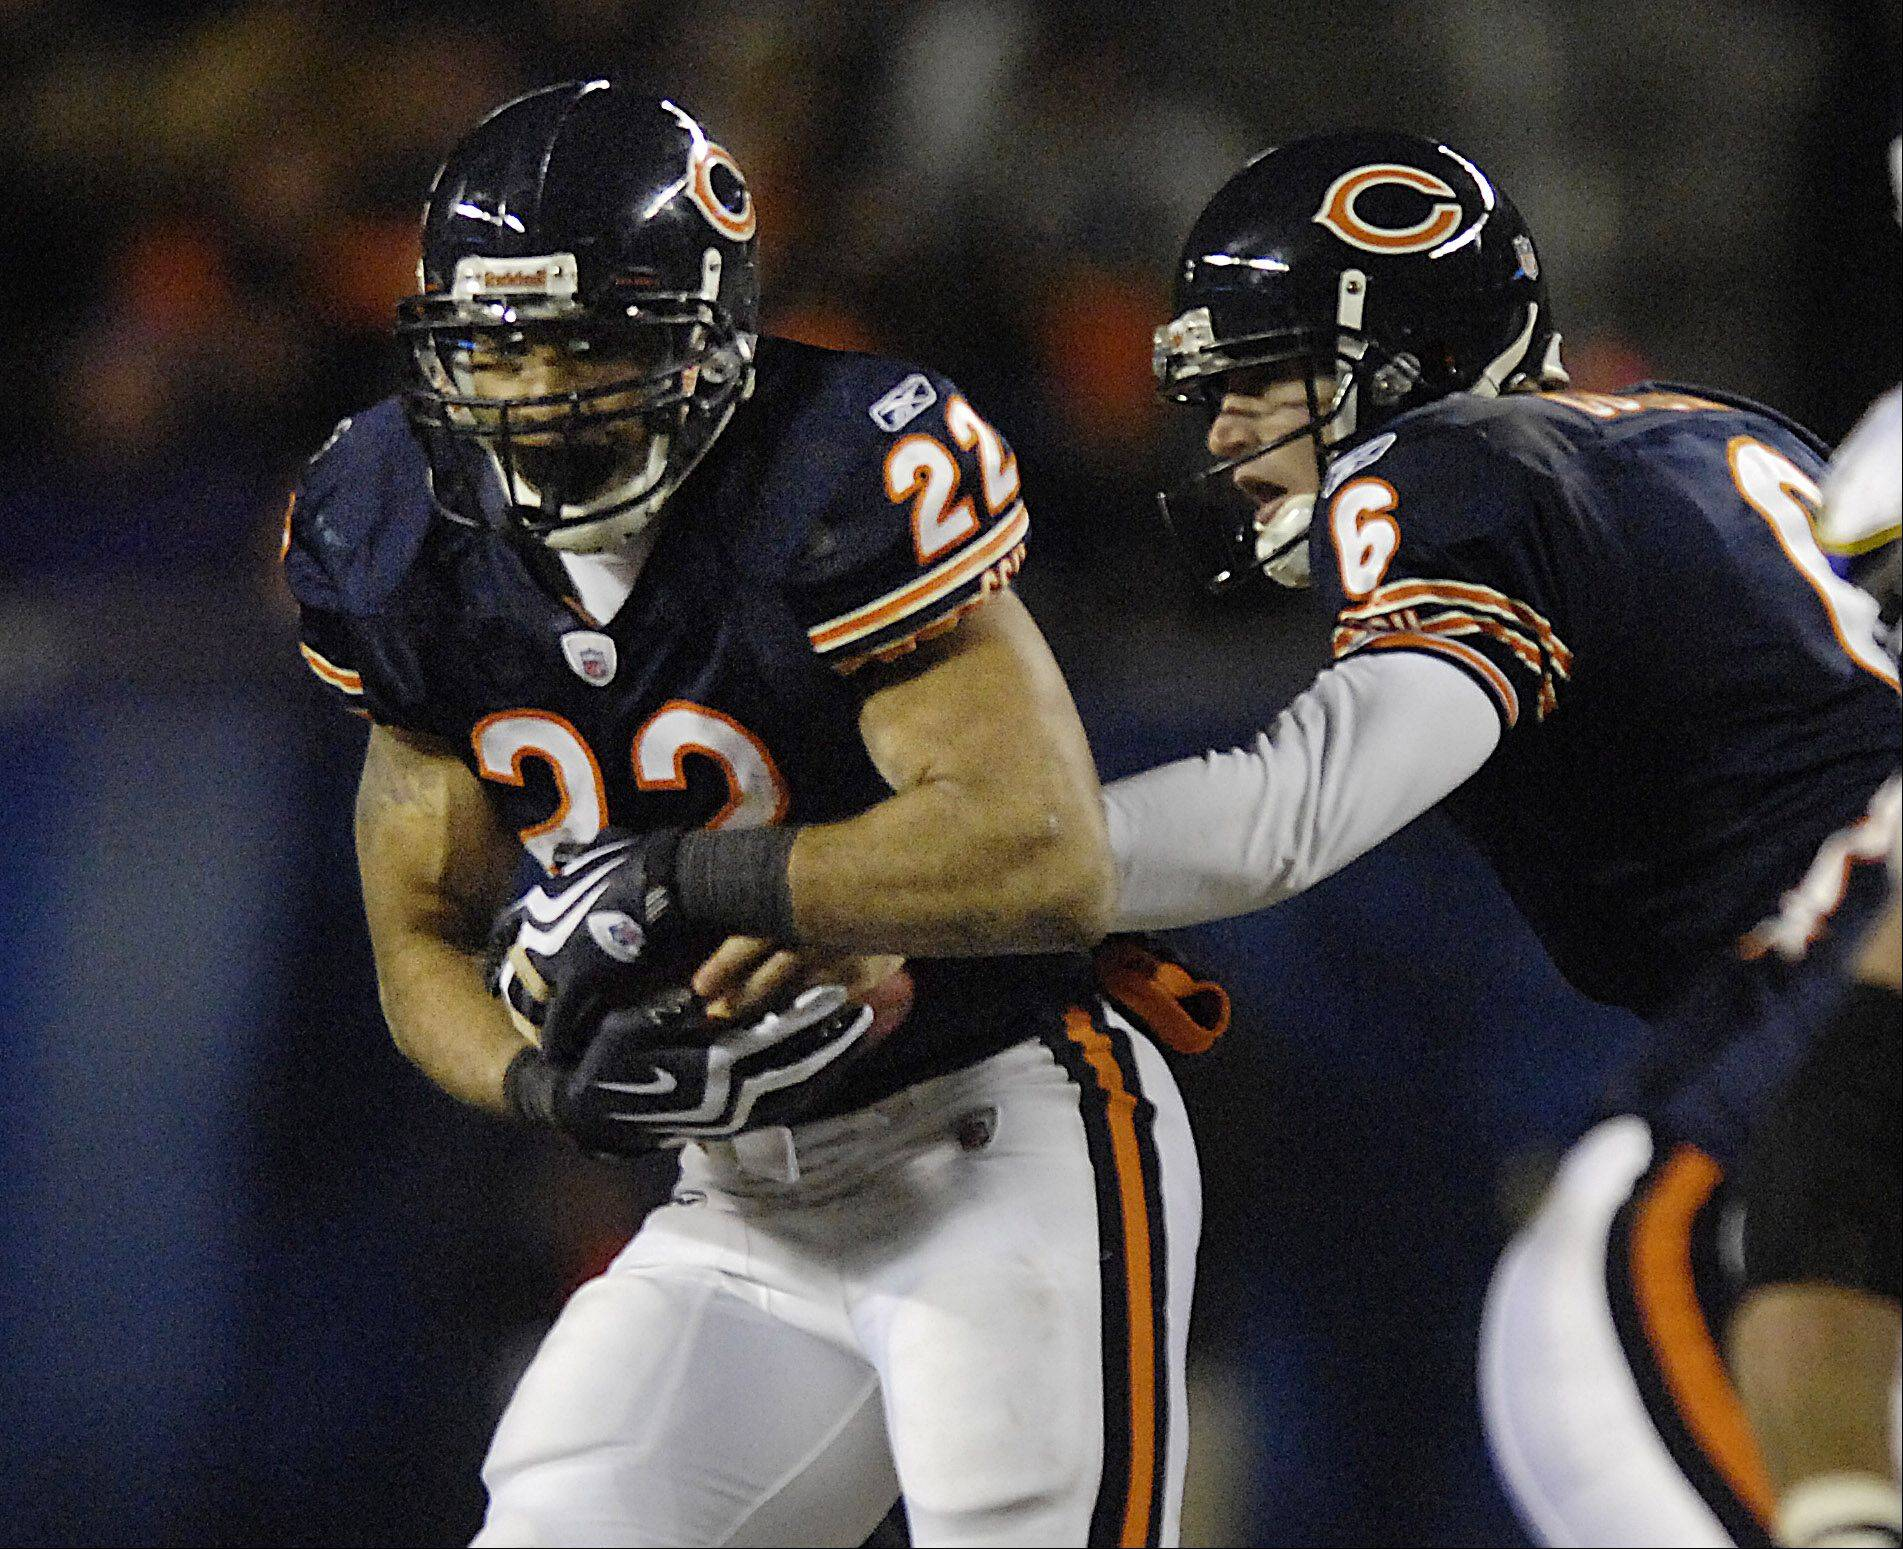 How many wins will Bears running back Matt Forte and quarterback Jake Cutler help their team get this season? Most national NFL experts are predicting the Bears won't make the playoffs. They open Sunday at home against Atlanta.